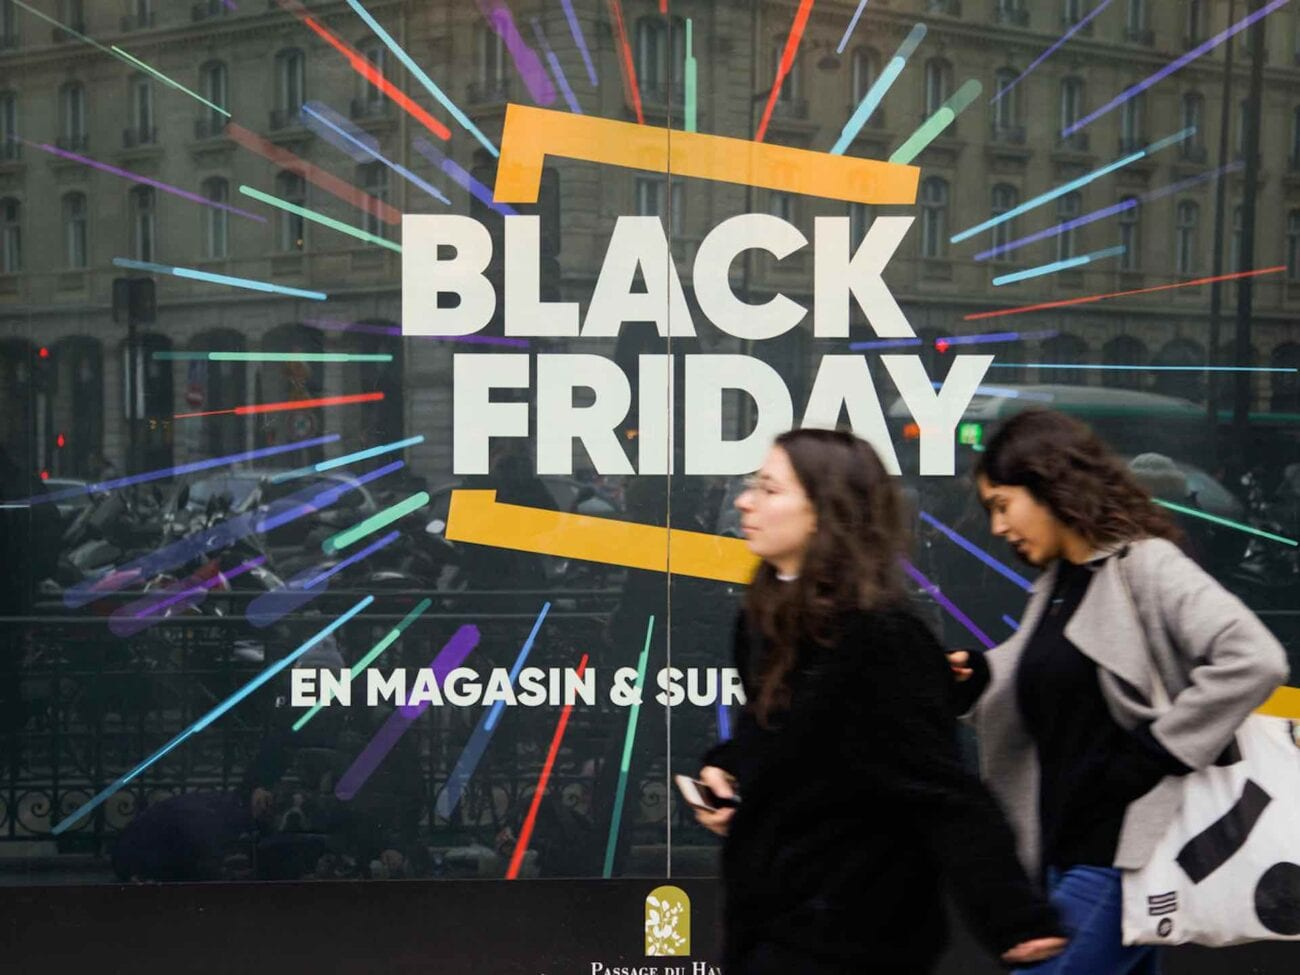 Black Friday is a capitalist holiday tradition, but will 2020 disrupt the day of consumerism? Here's what's happening in France.